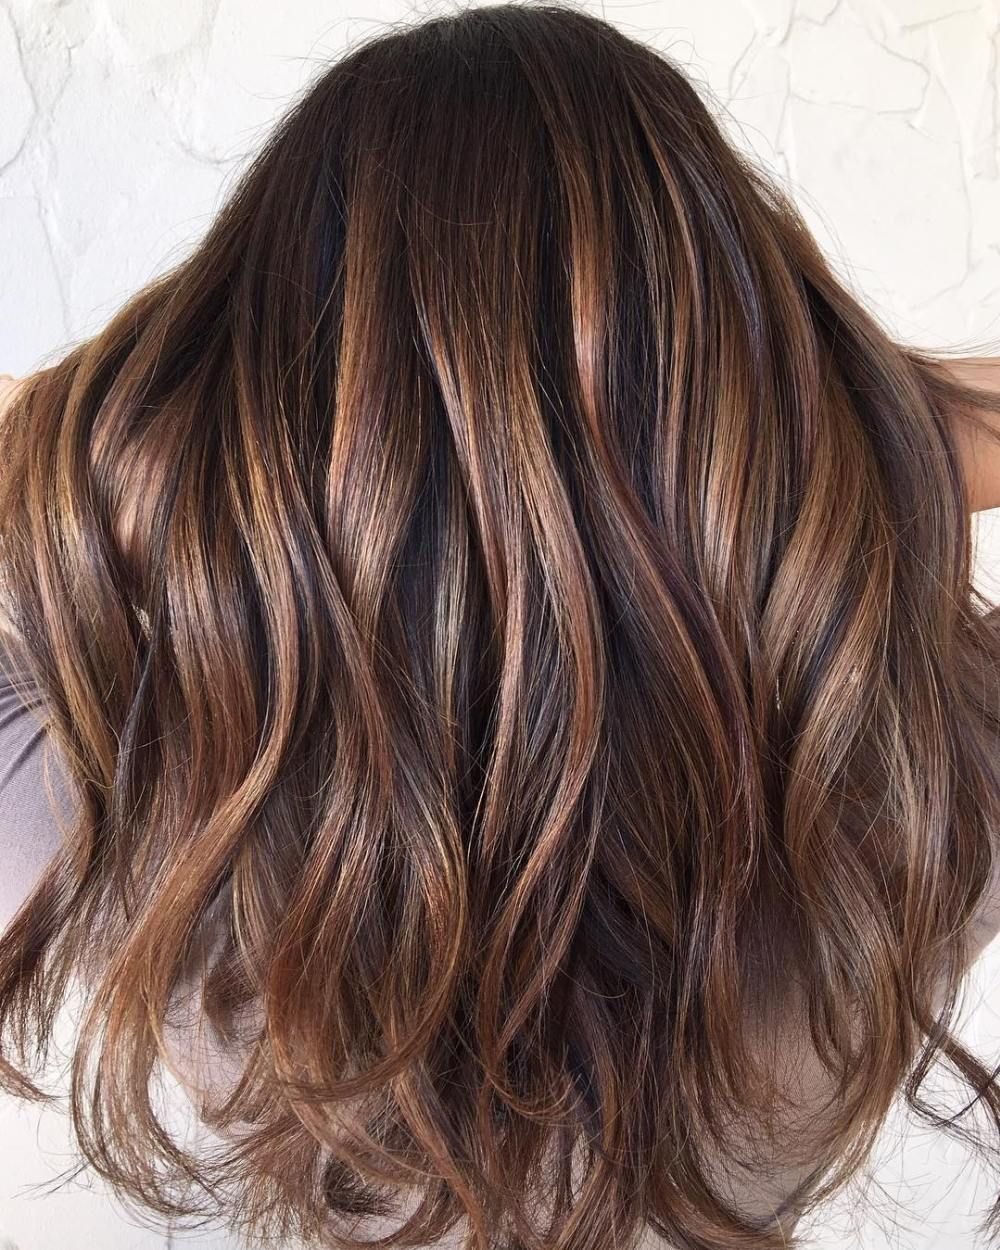 20 Tiger Eye Hair Ideas To Hold Onto Brown Hair Balayage